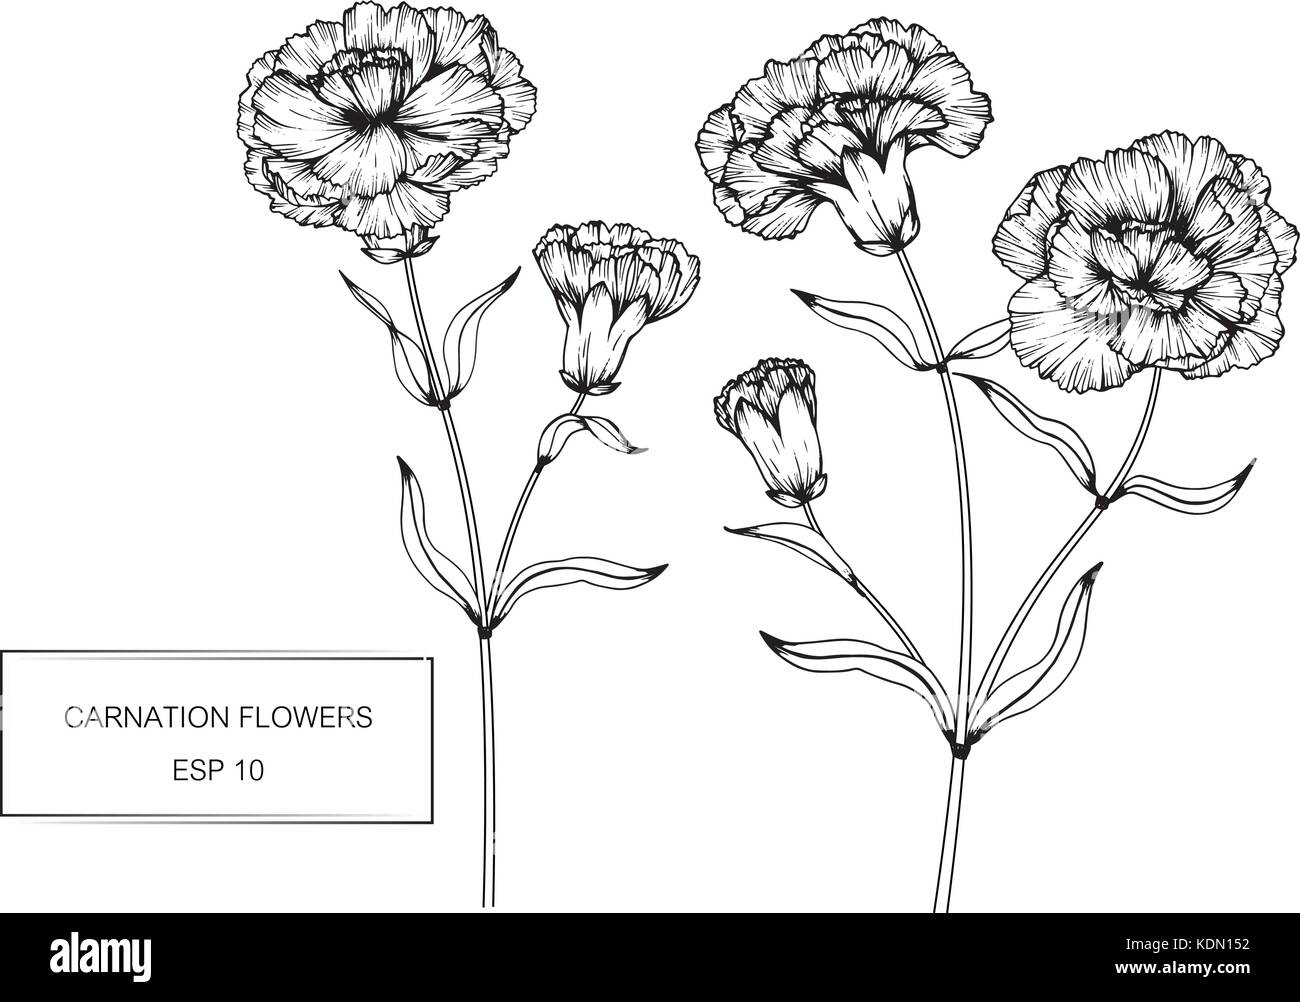 Diagram of a white carnation flower all kind of wiring diagrams white carnation stock vector images alamy rh alamy com flower reproduction diagram male flower diagram ccuart Gallery